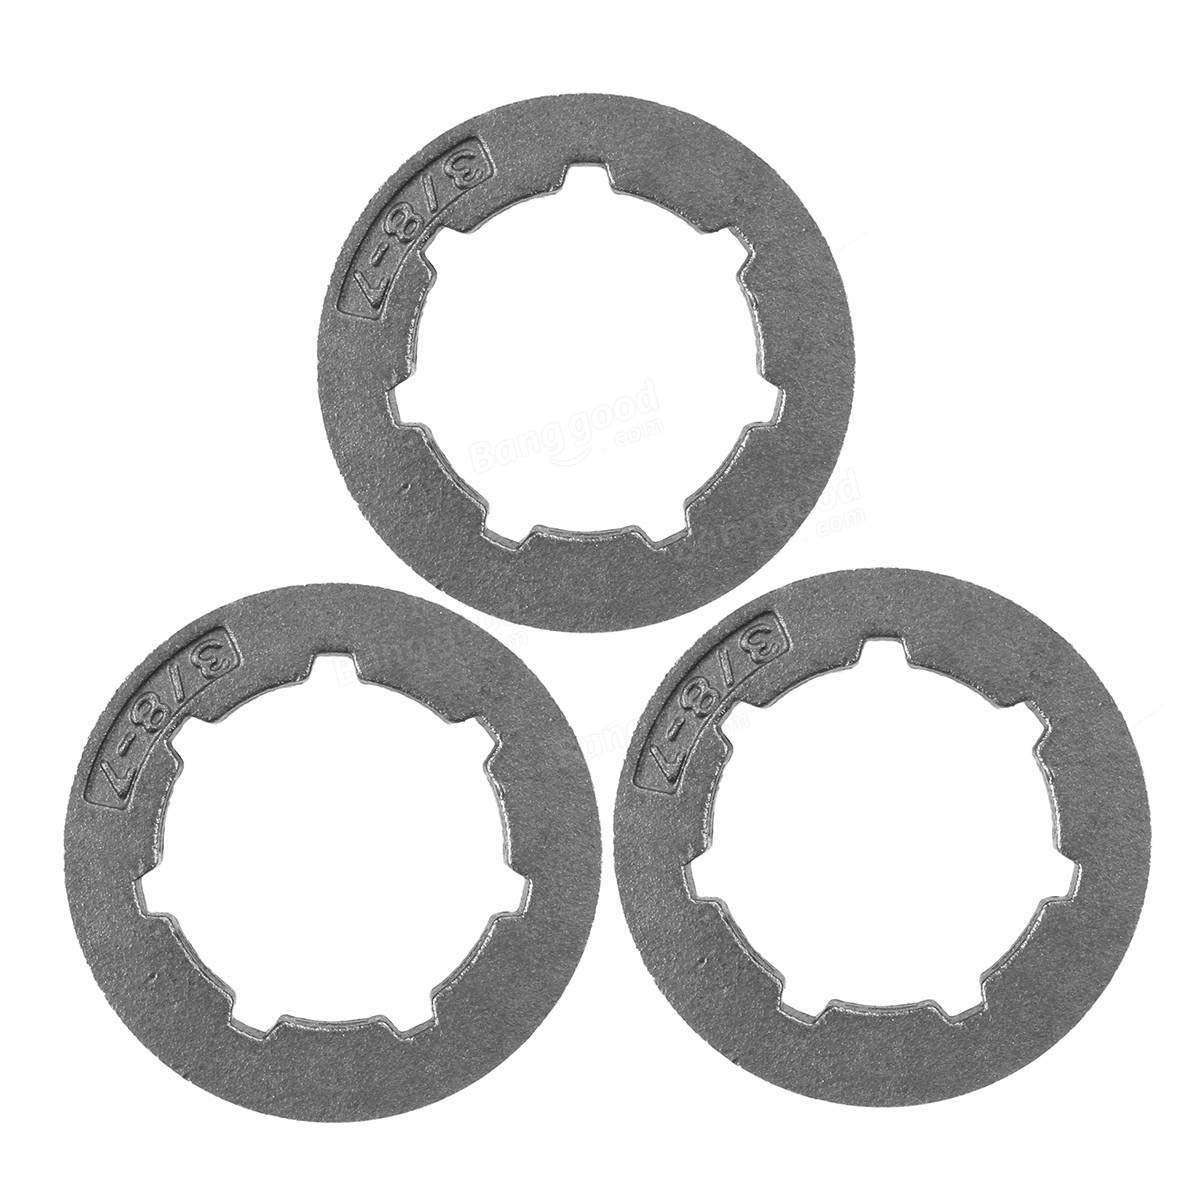 Amazon.com : 3pcs Sprocket Rim For Stihl 024 026 028 029 034 MS260 MS270  MS280 MS290 Chain Saw Part - Power Tool Parts Other Accessories - 3pcs x  Sprocket ...